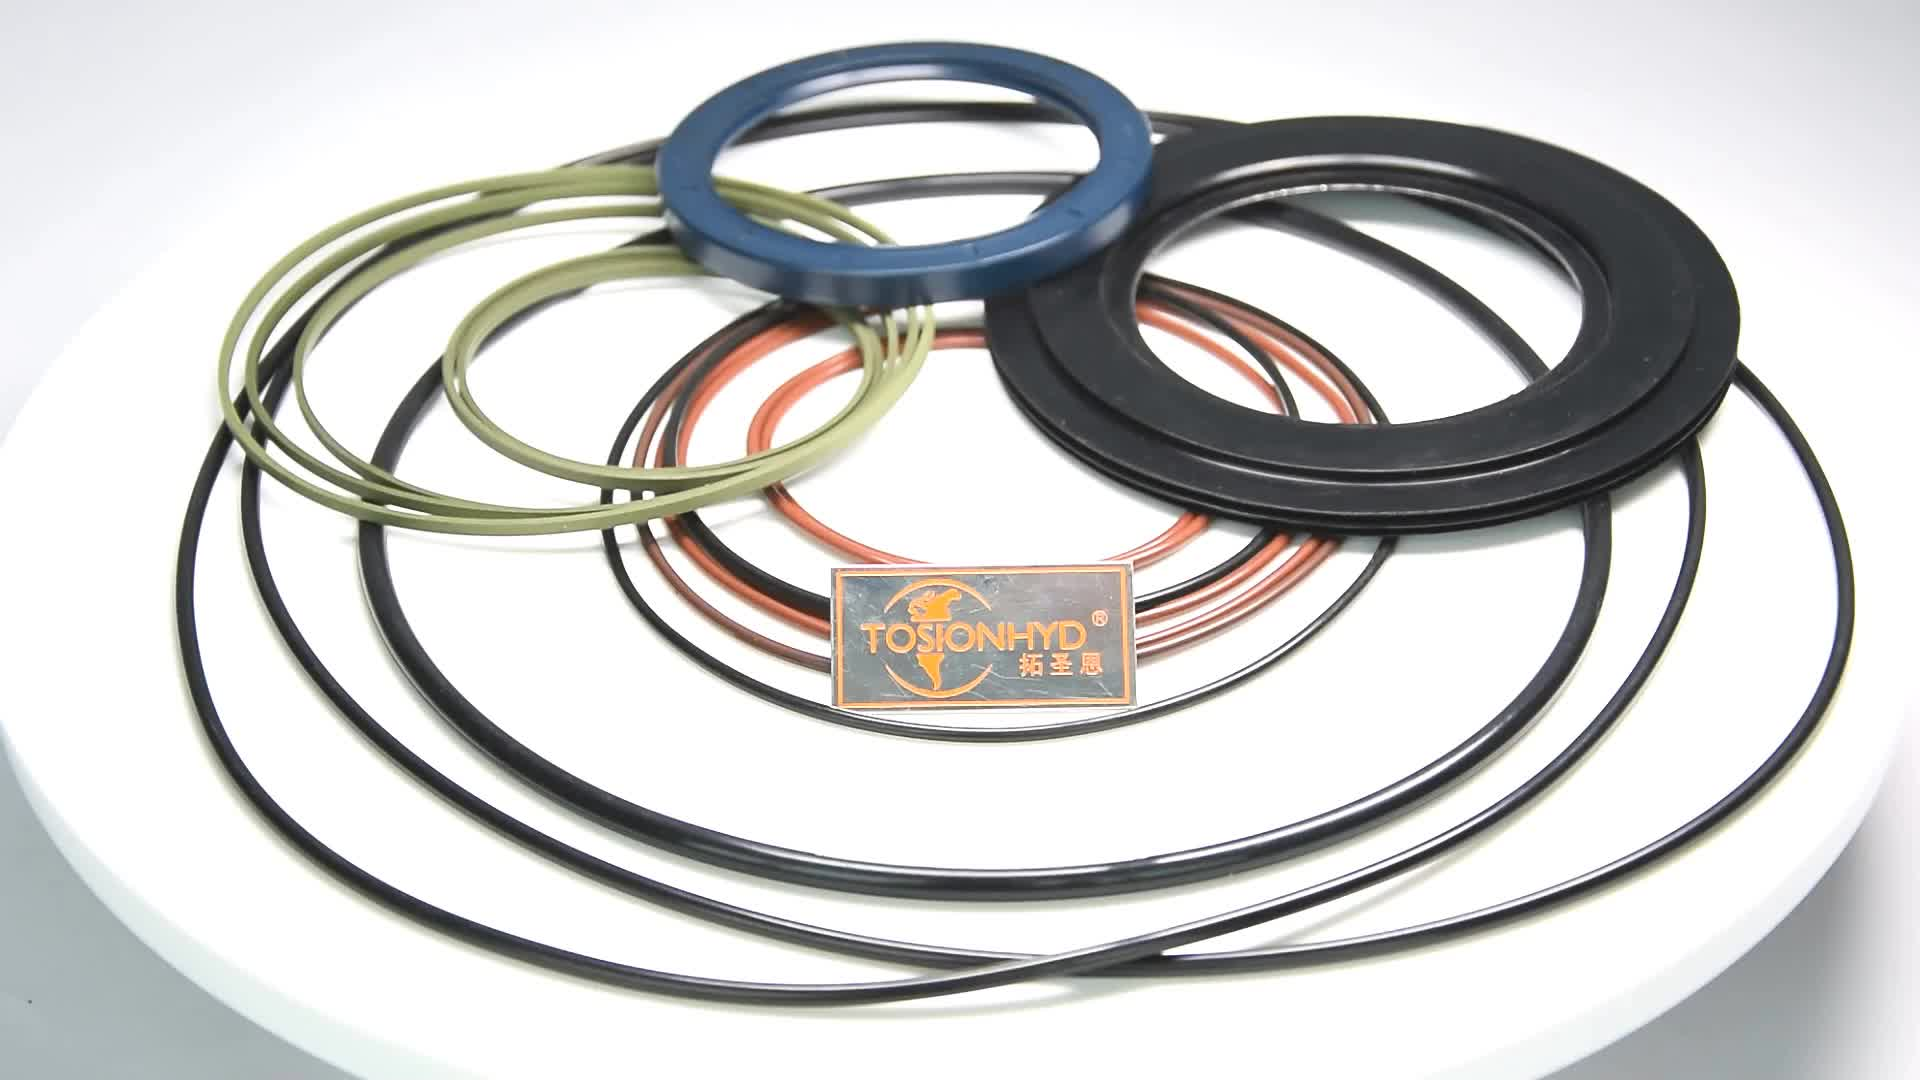 Self Order Ms11 SINGLE SPEED Repair Seals Kits Hydraulic China made replace  Poclain machine motor price spare parts seal kit